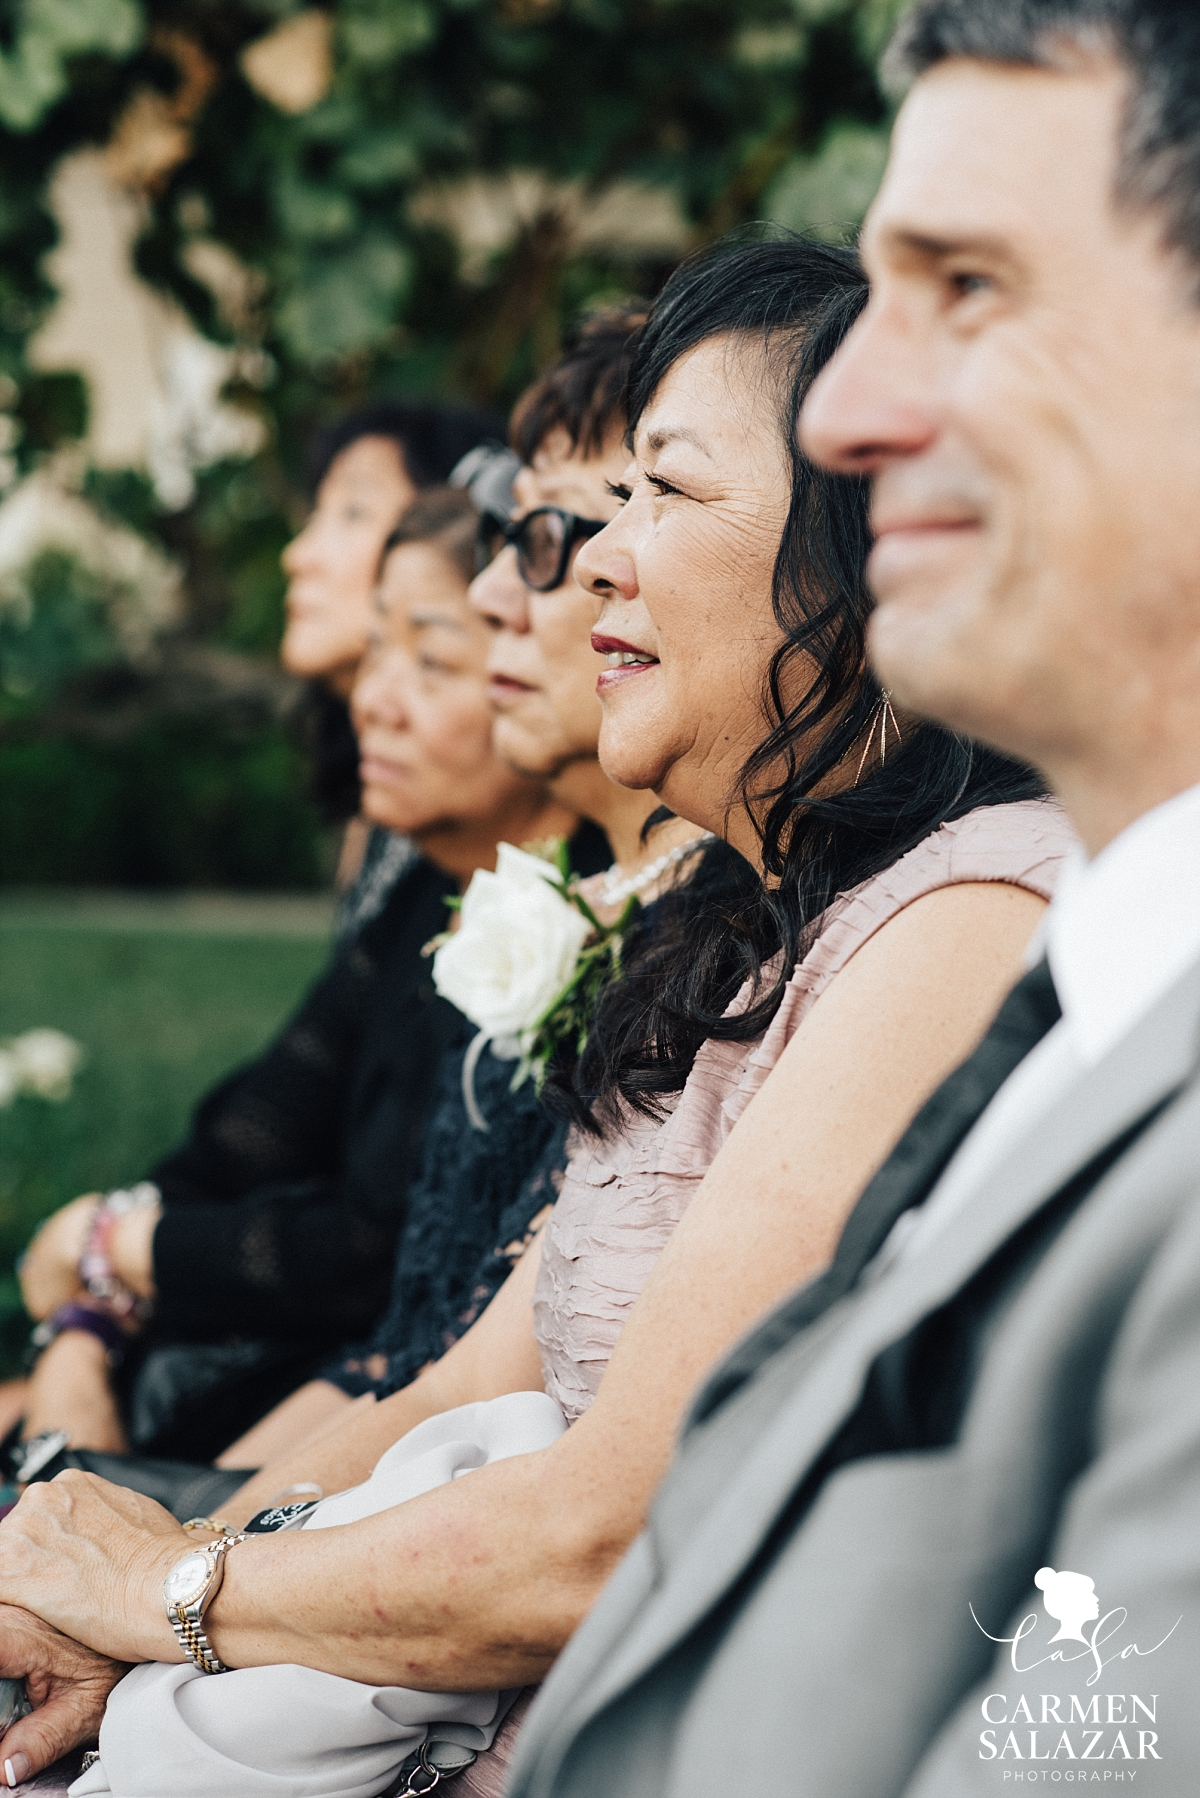 Happy mother of the groom at outdoor winery ceremony - Carmen Salazar